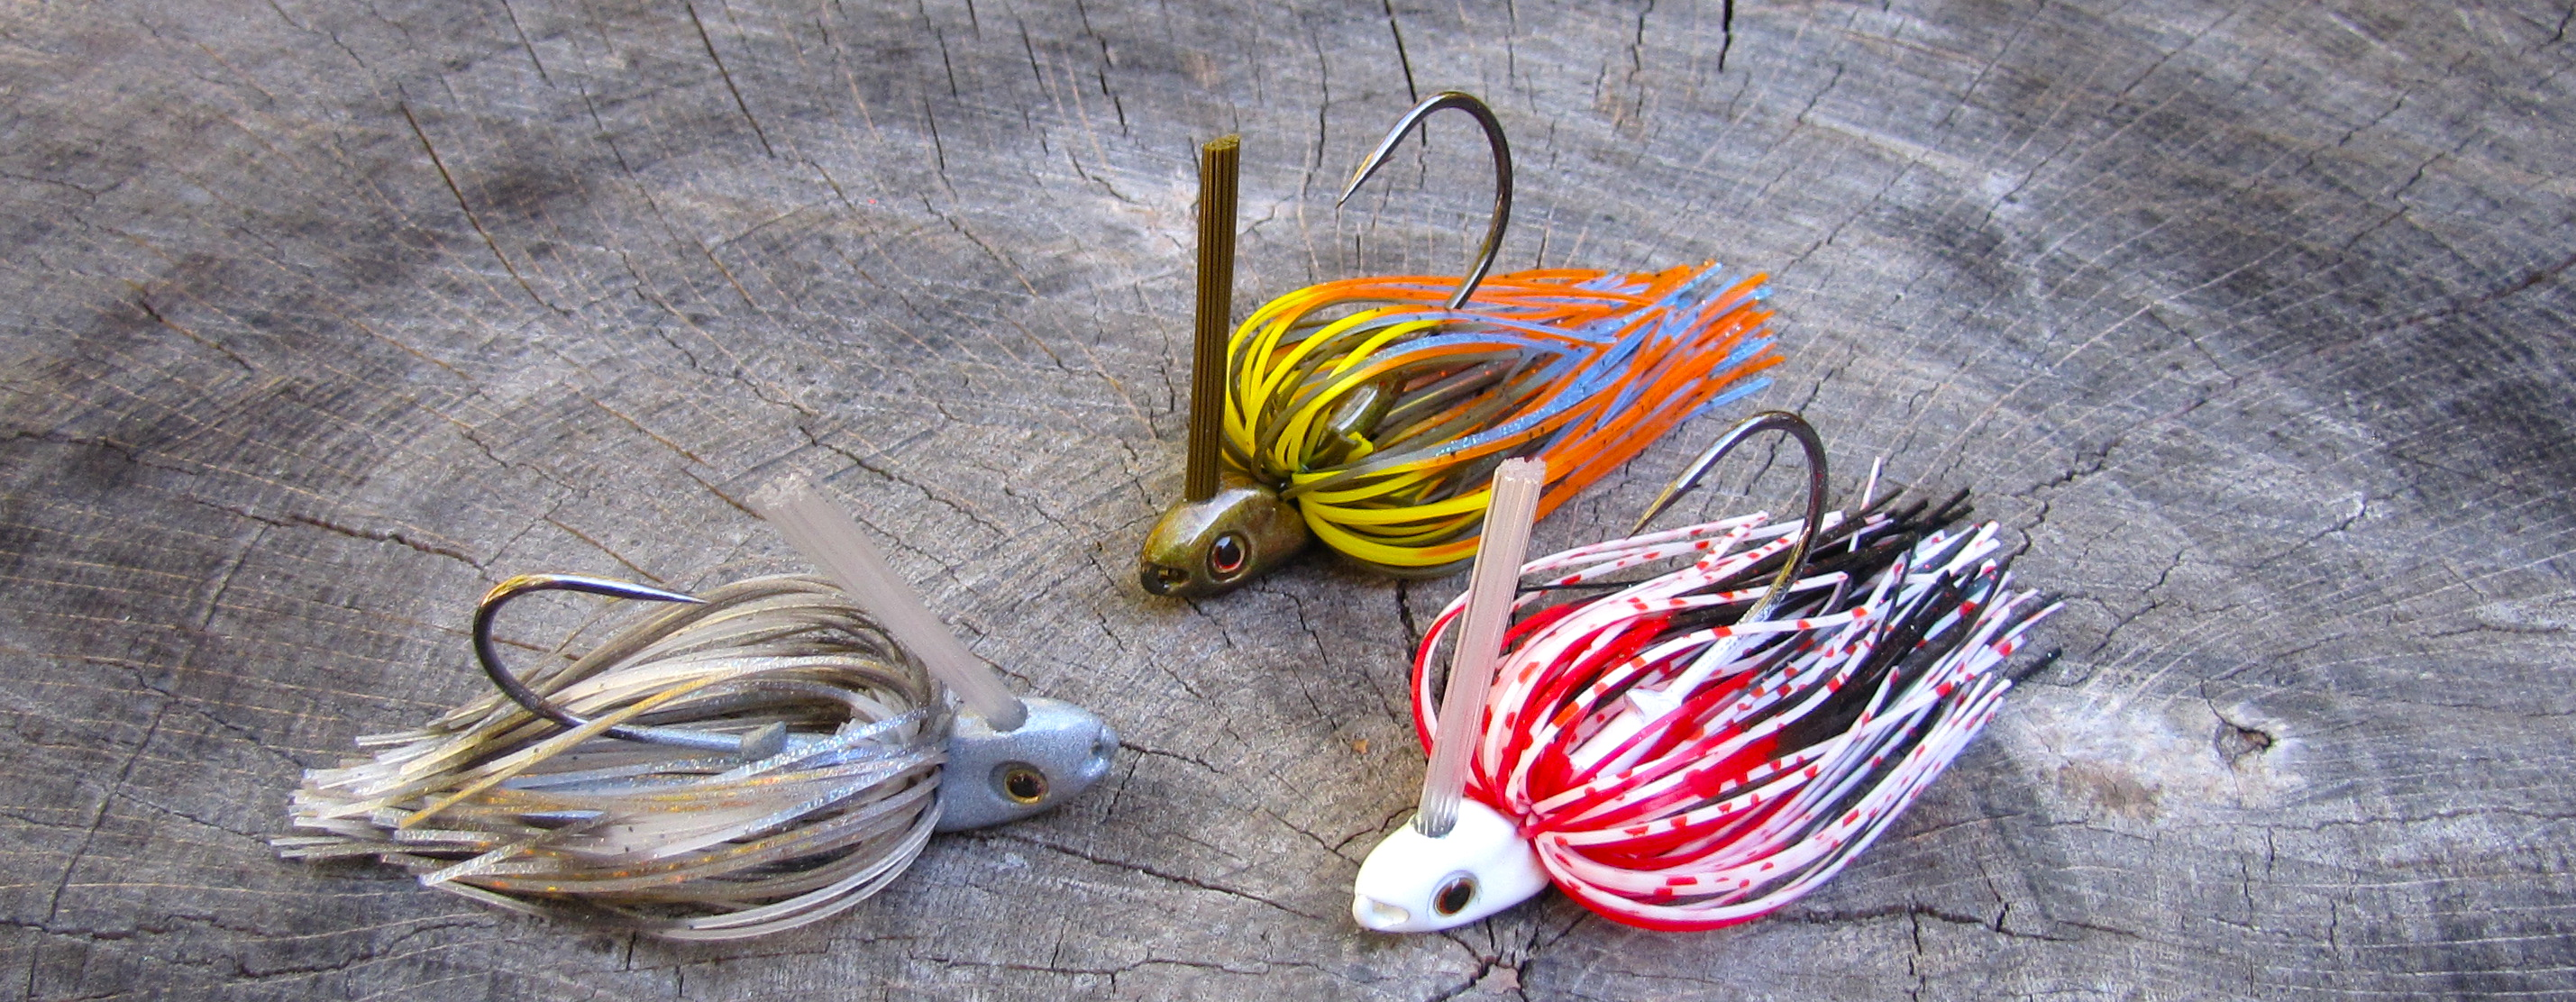 Fishing Frugal Lures Swim Jigs